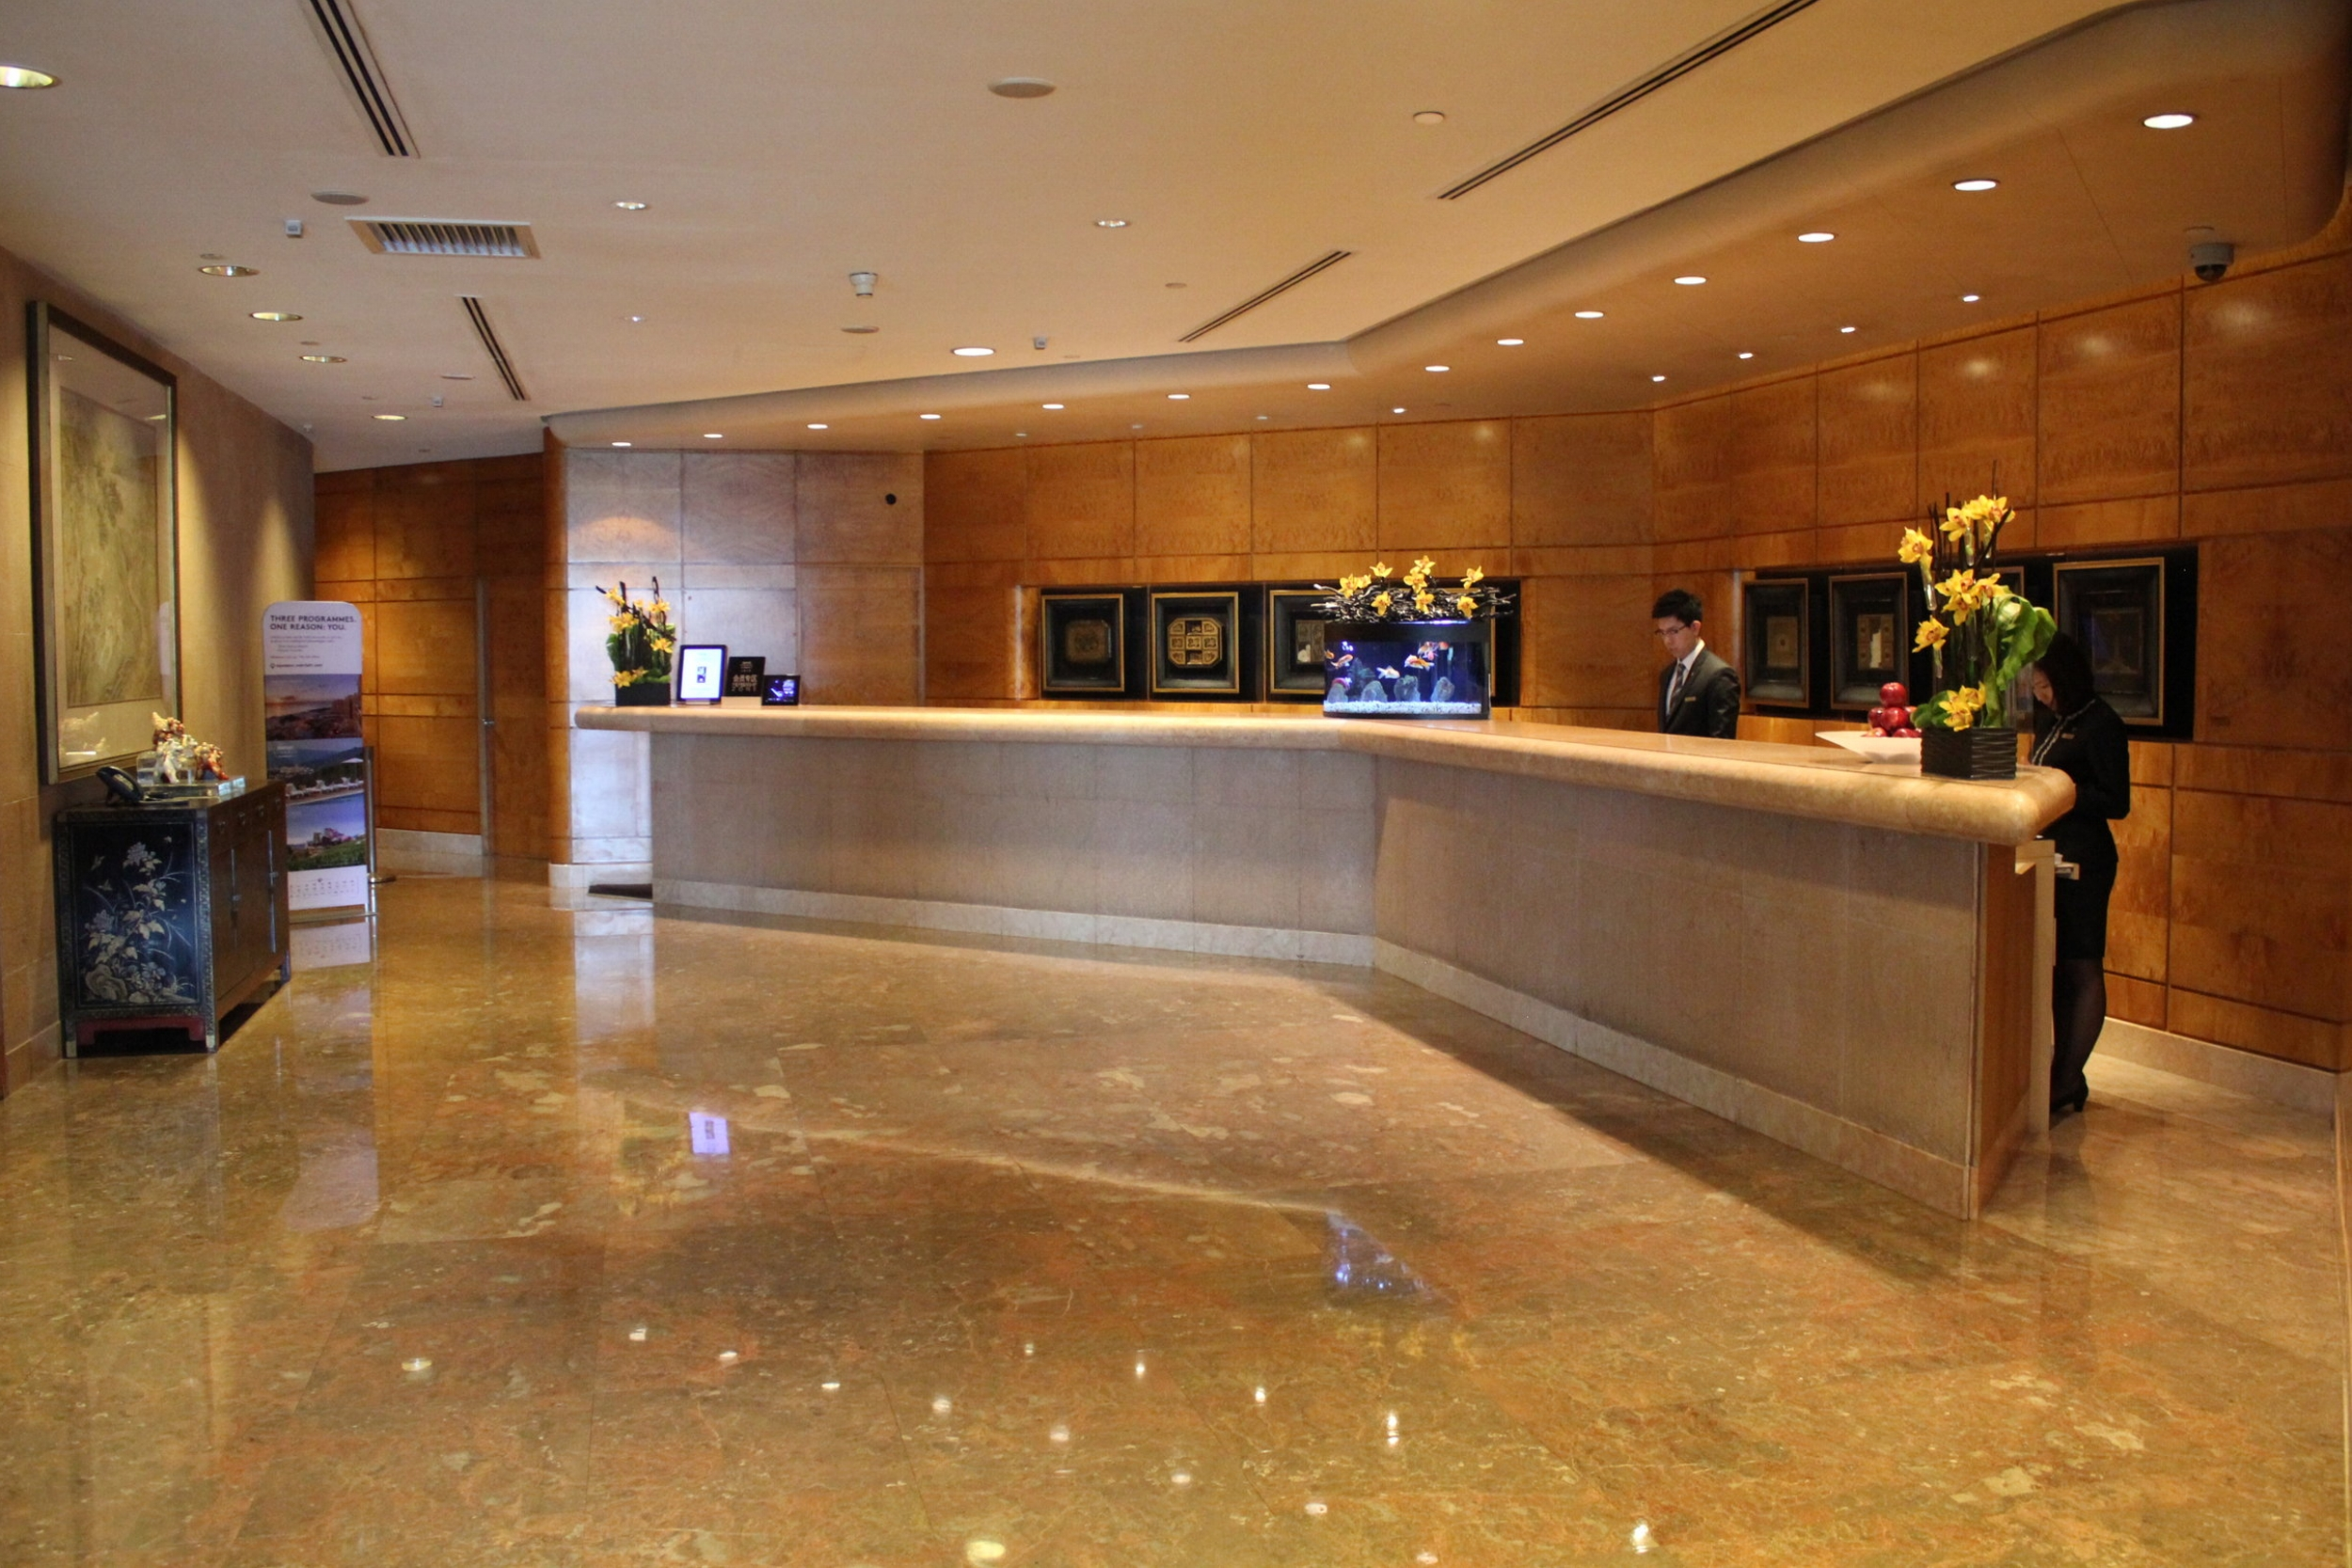 JW Marriott Hong Kong – Check-in counters